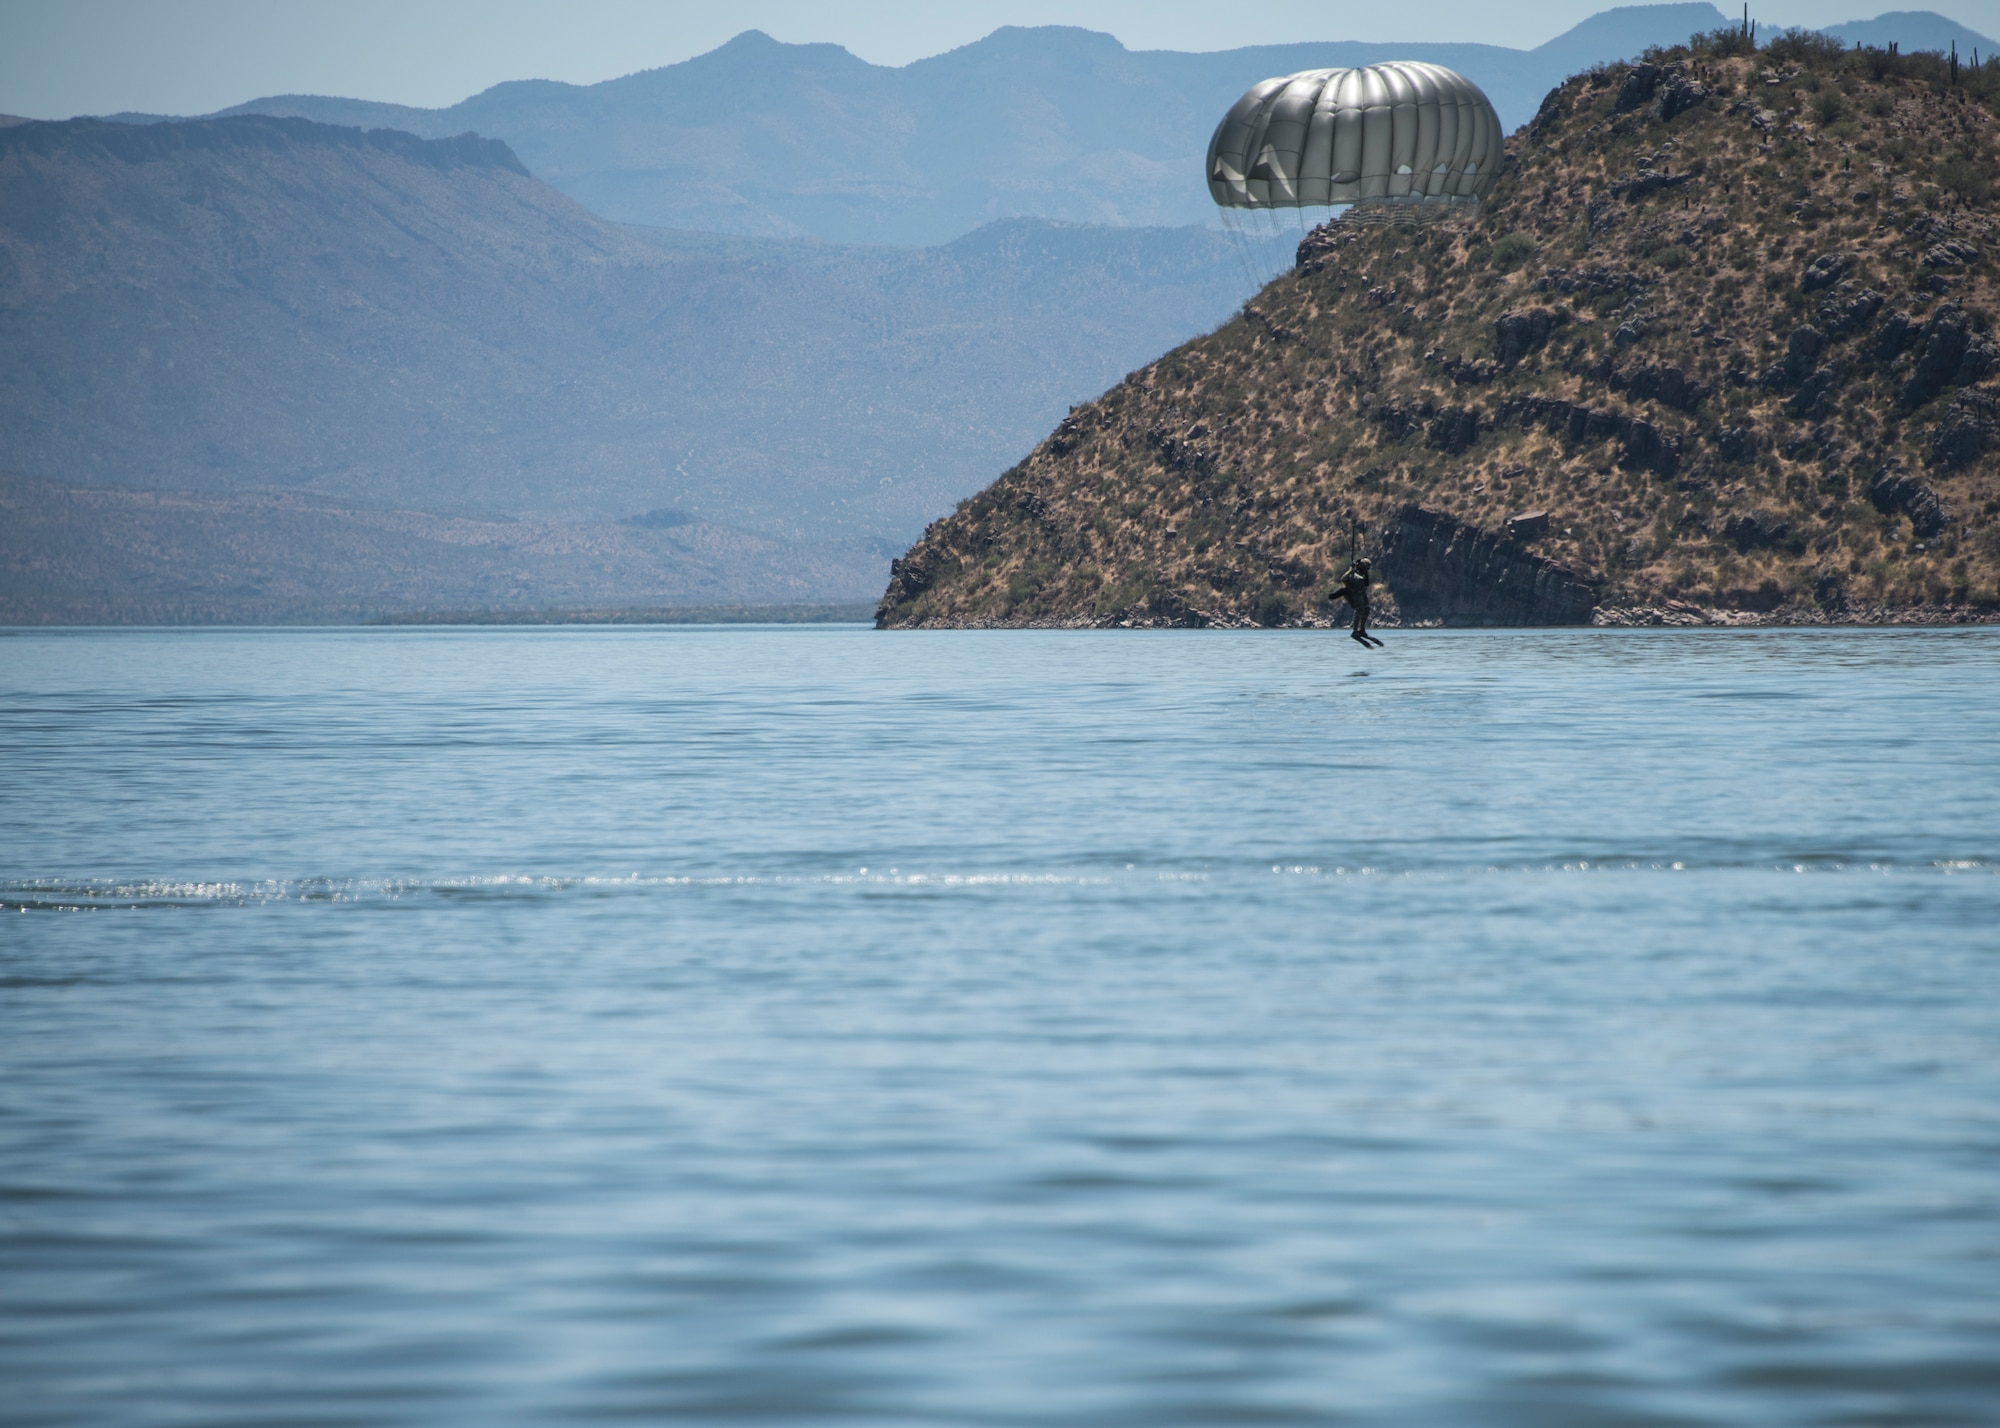 U.S Military • Freefall and Static Parachute Jumps • Theodore Roosevelt Lake, Arizona • 29 July 2020